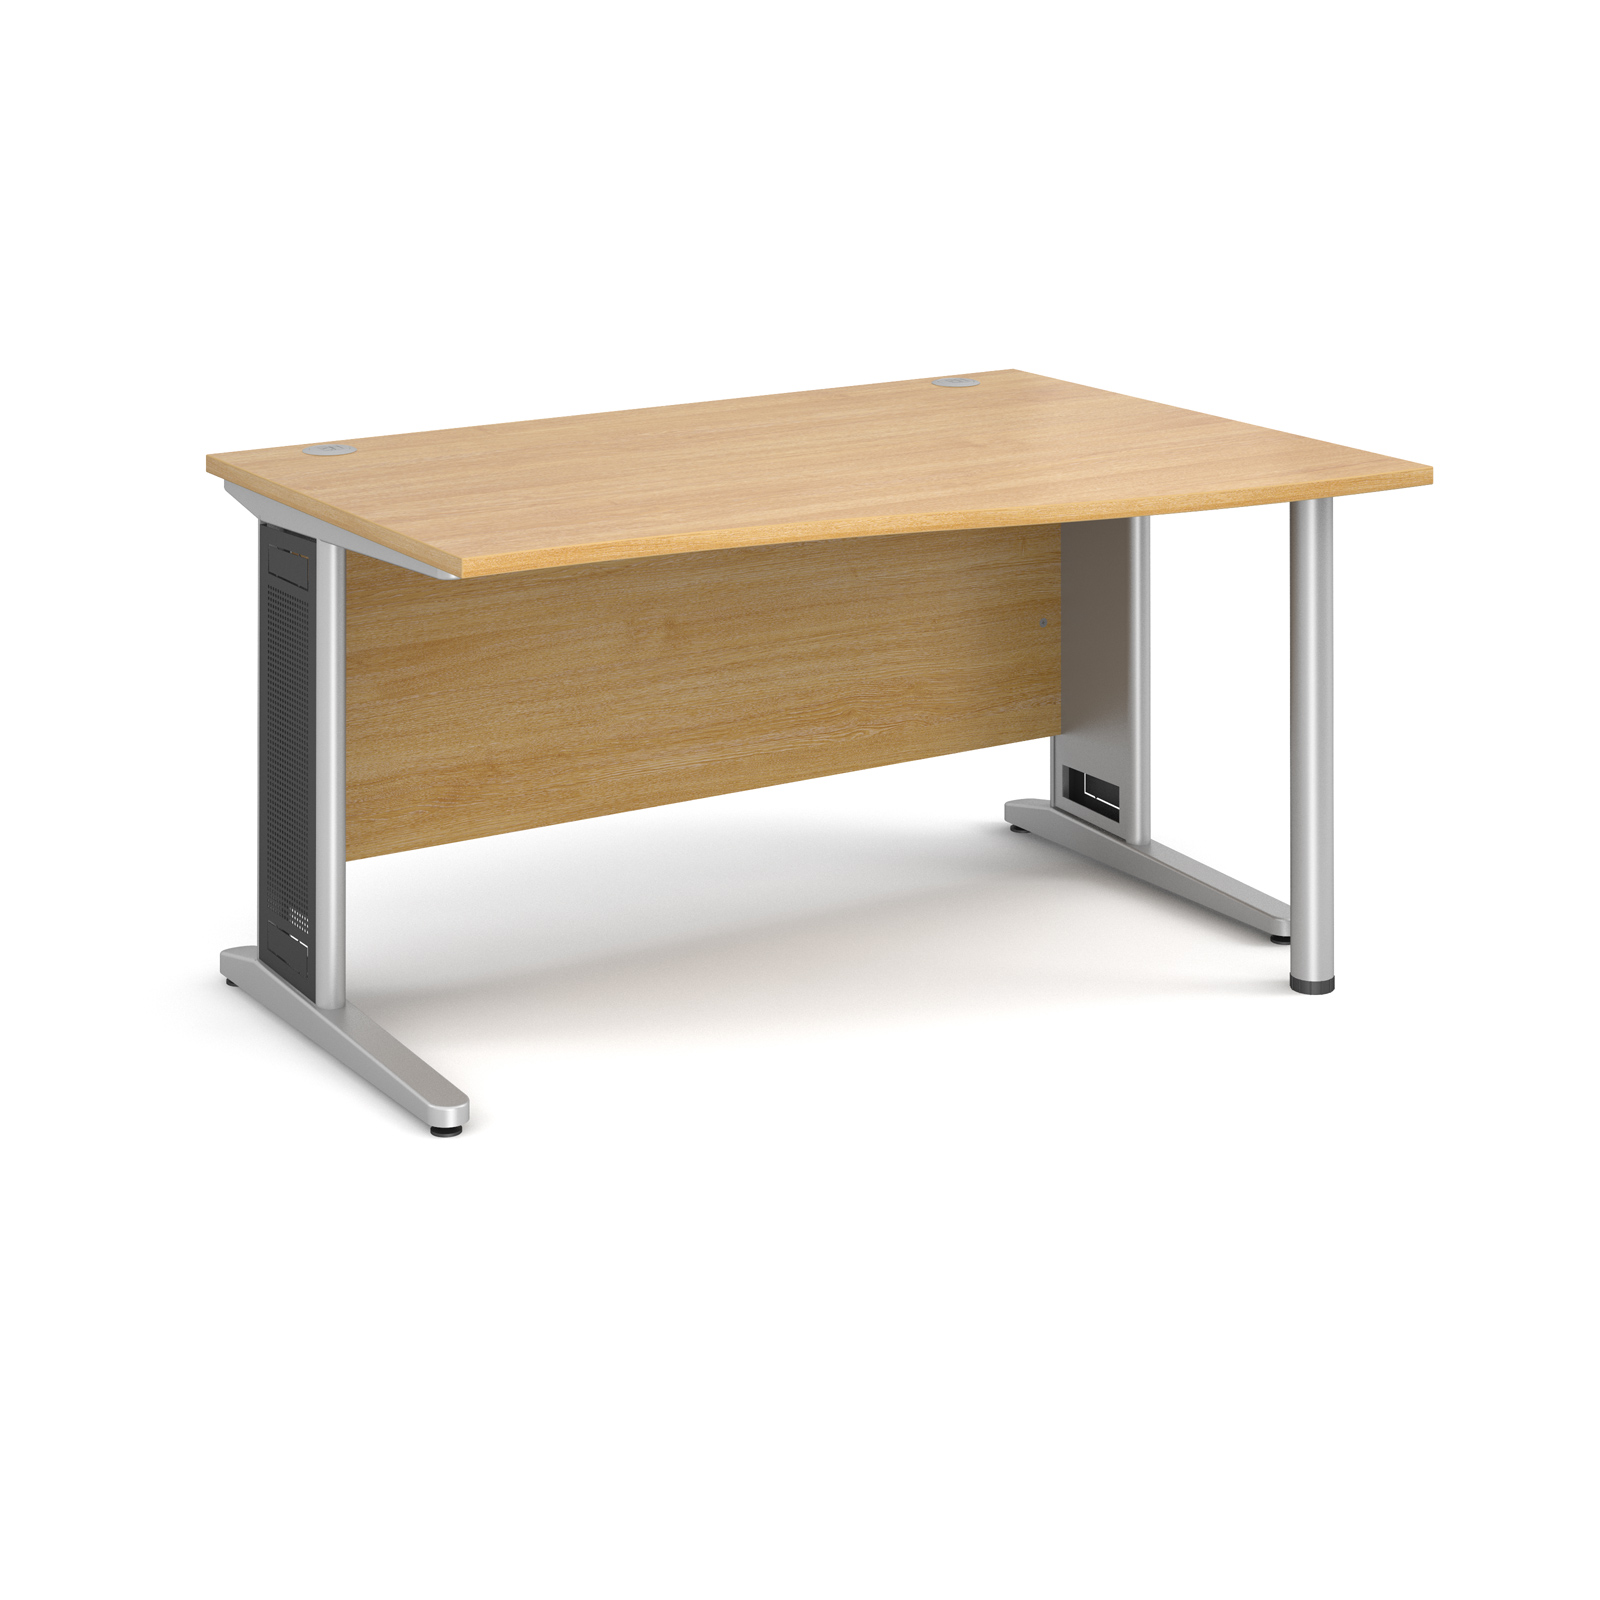 Largo right hand wave desk 1400mm - silver cantilever frame with removable grill, oak top